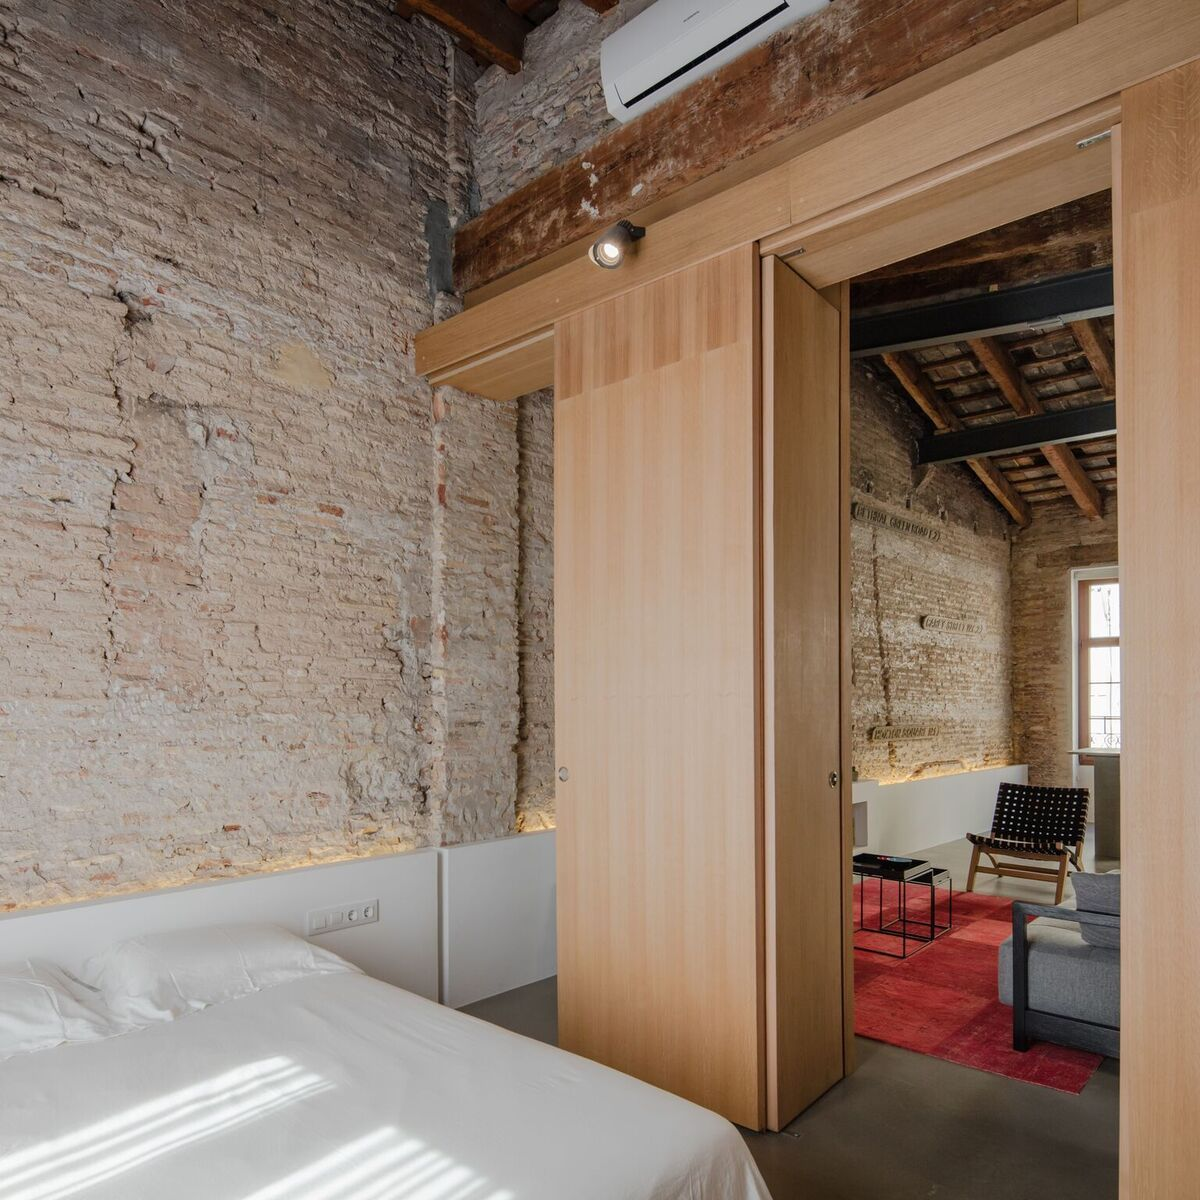 The partitions help divide the day and night areas, separating the bedroom from the living spaces